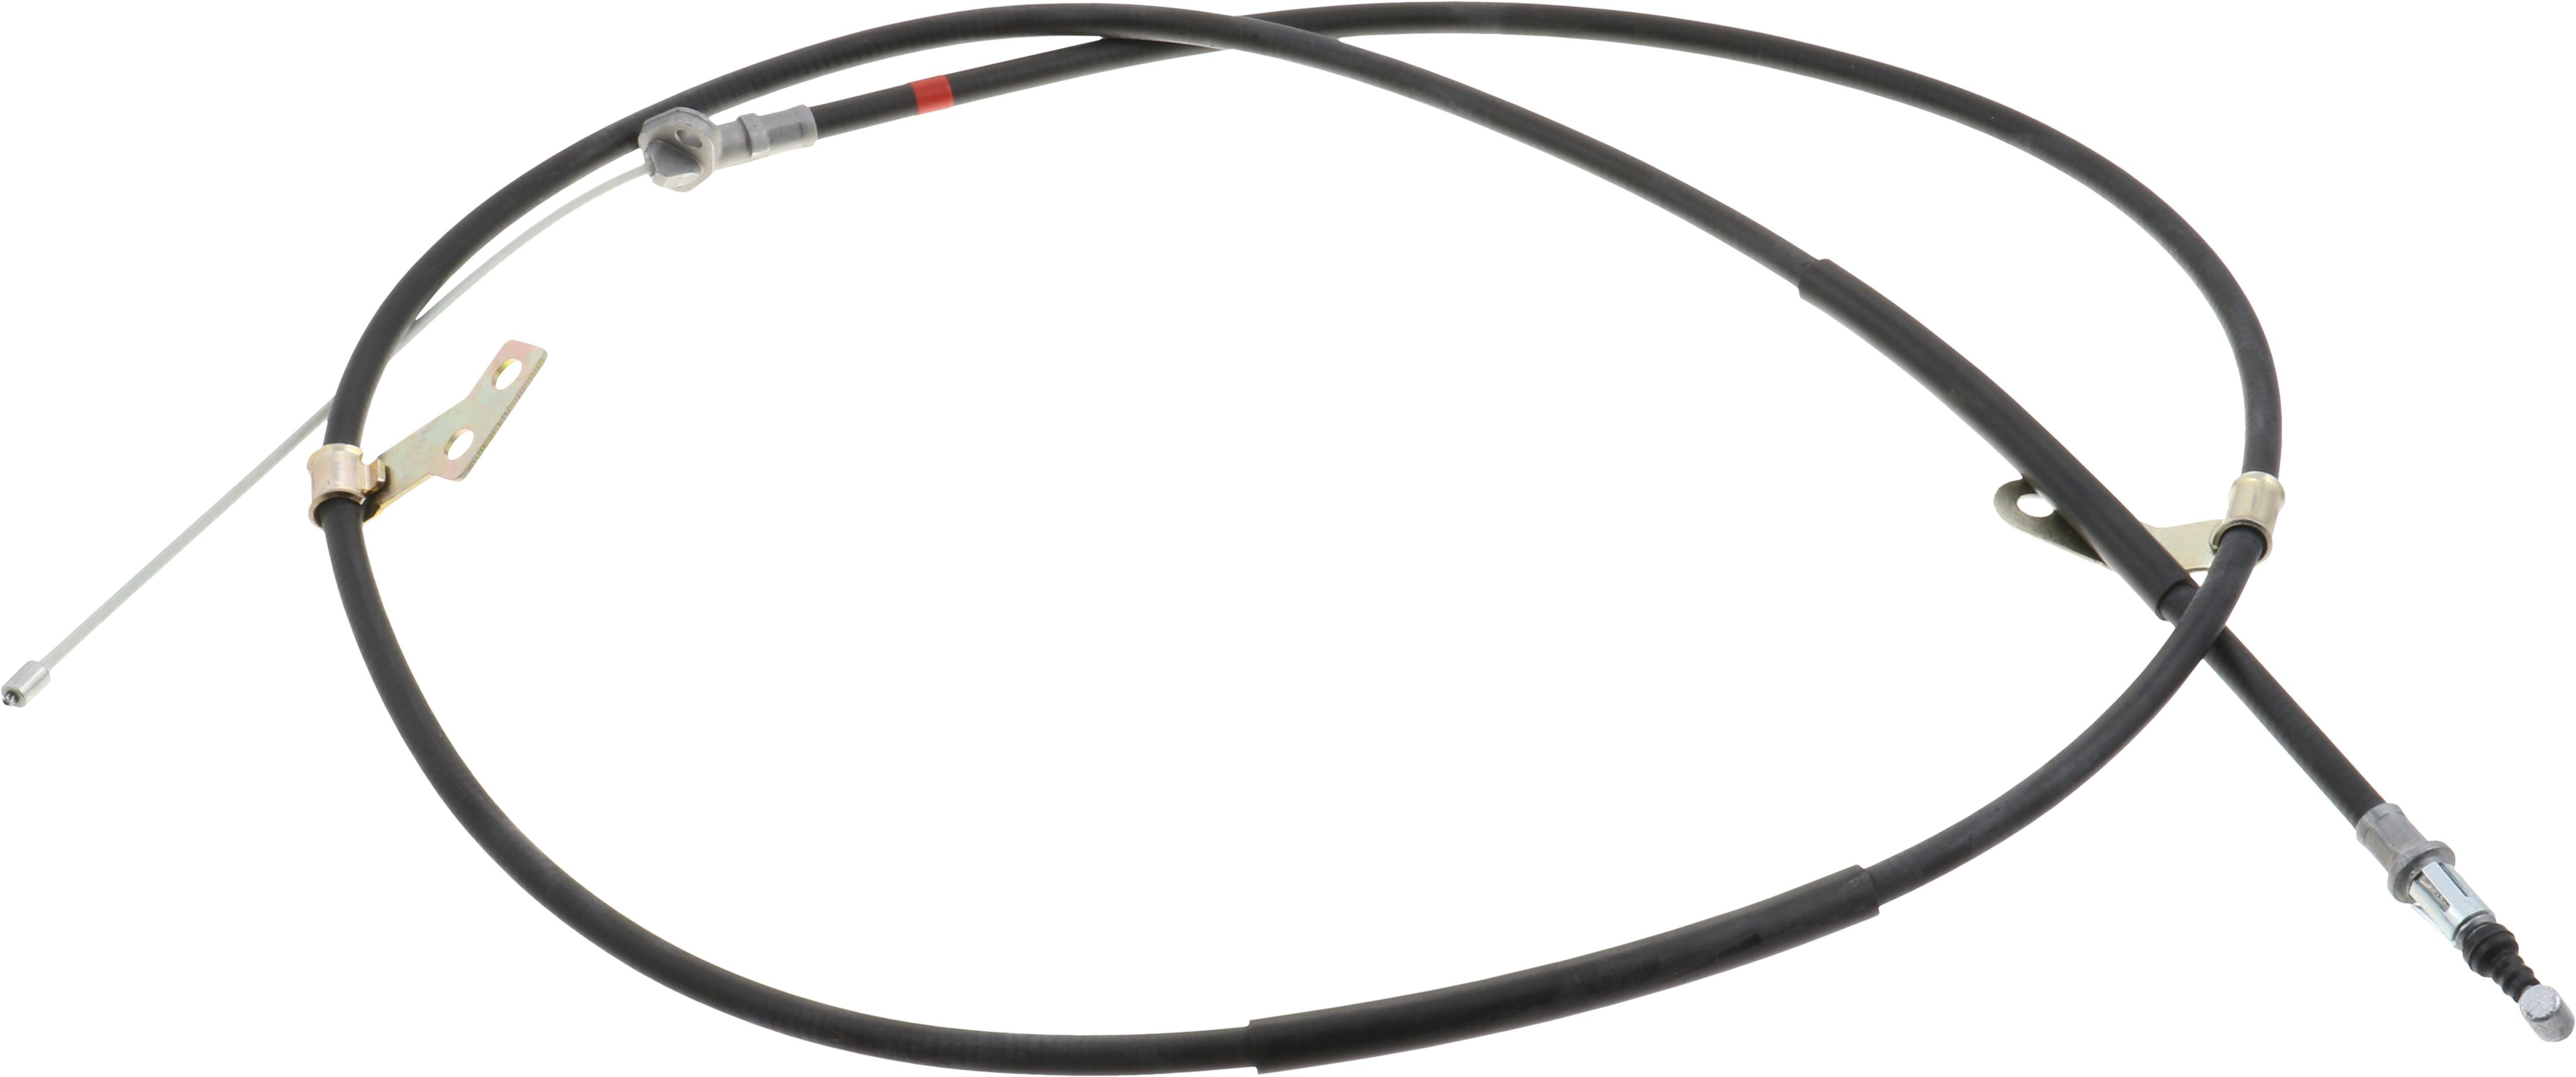 Nissan Frontier Parking Brake Cable Right Rear